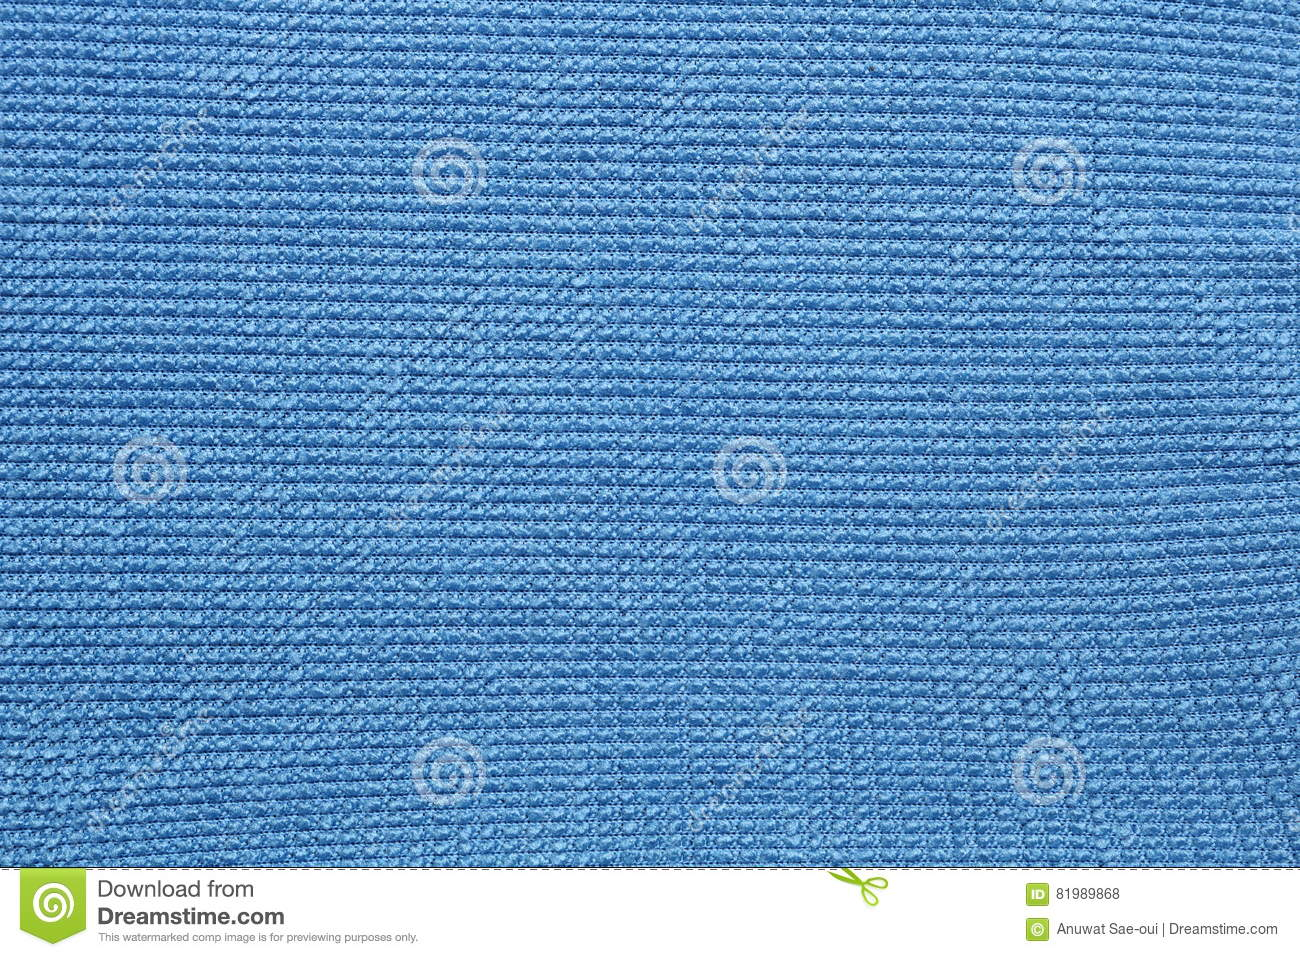 Microfiber background